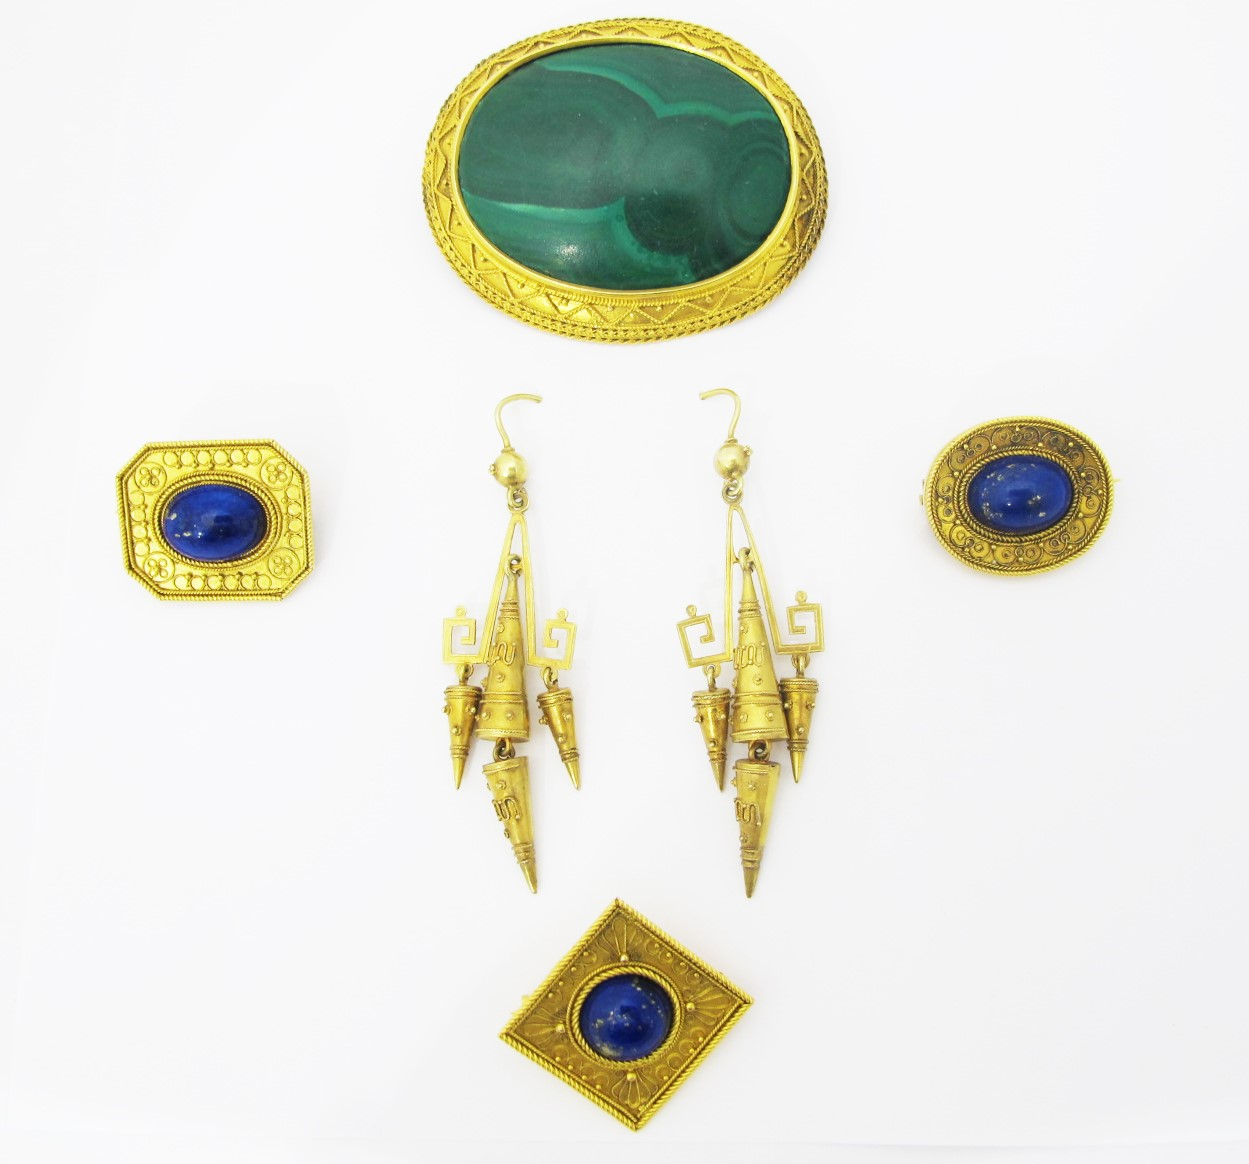 Etruscan Revival brooches and earrings, gold, malachite and lapis. Nineteenth Century. All available for sale at Gray & Davis.